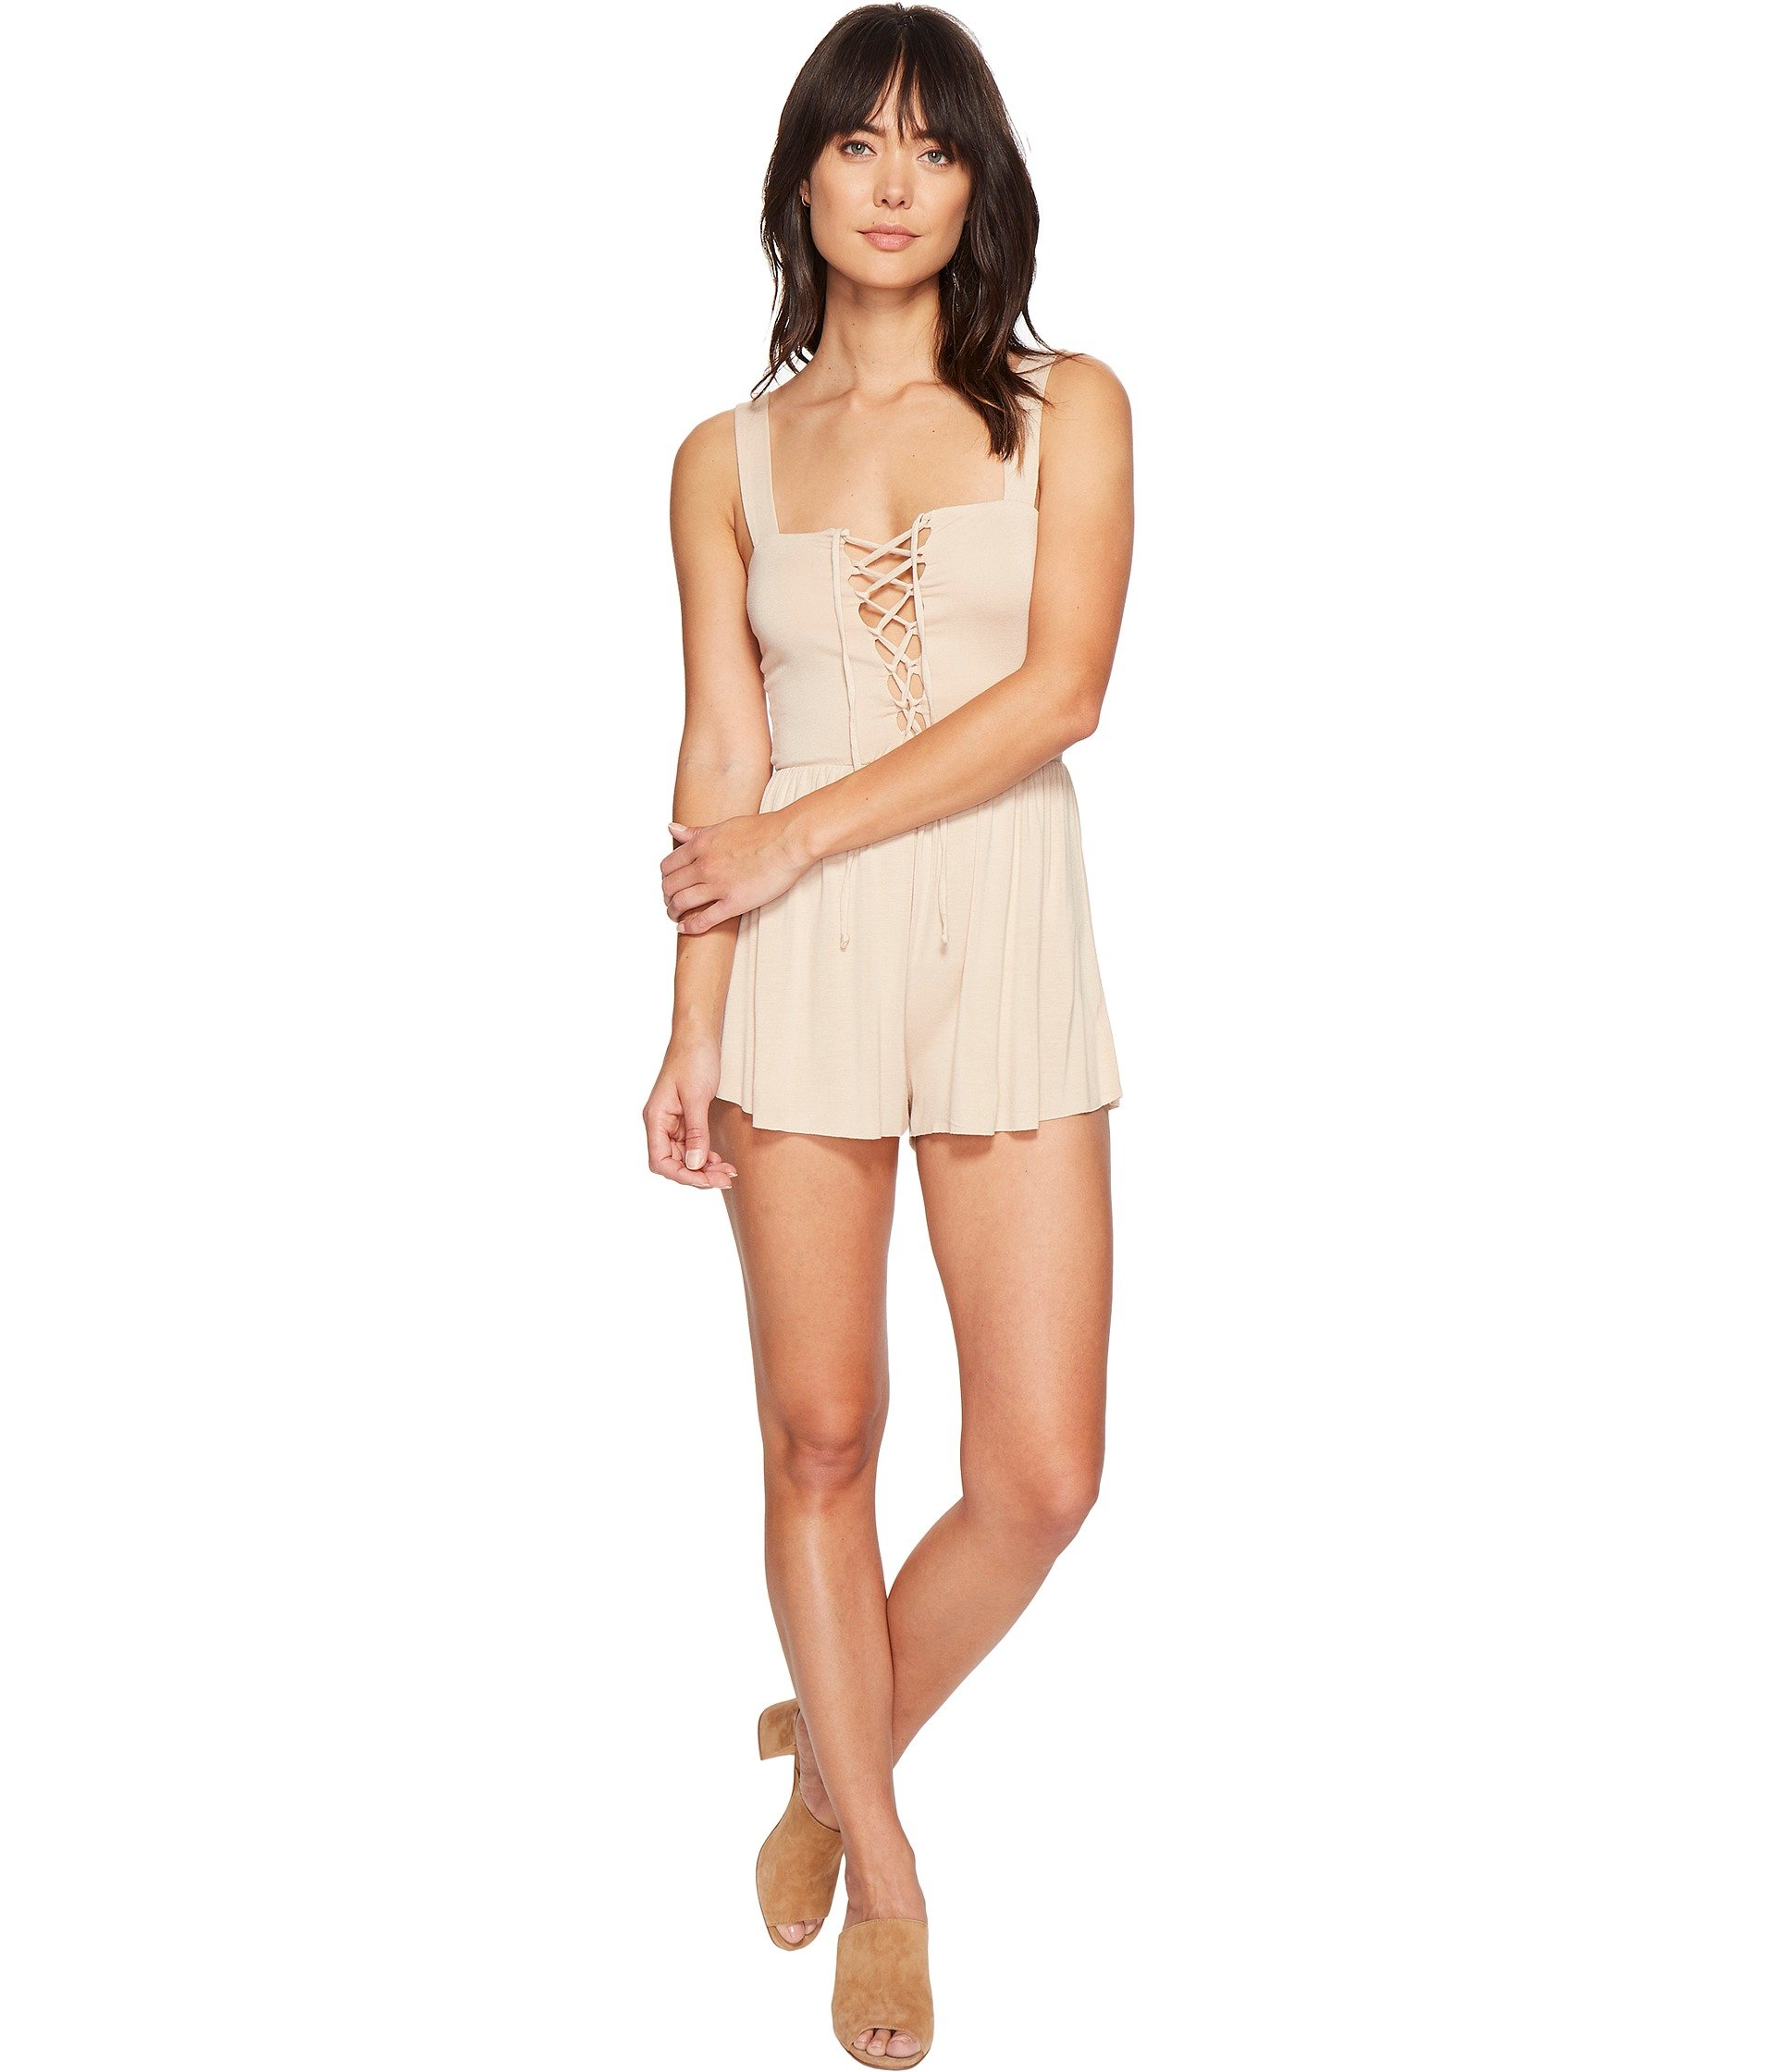 CLAYTON Kizzy Playsuit, Bare